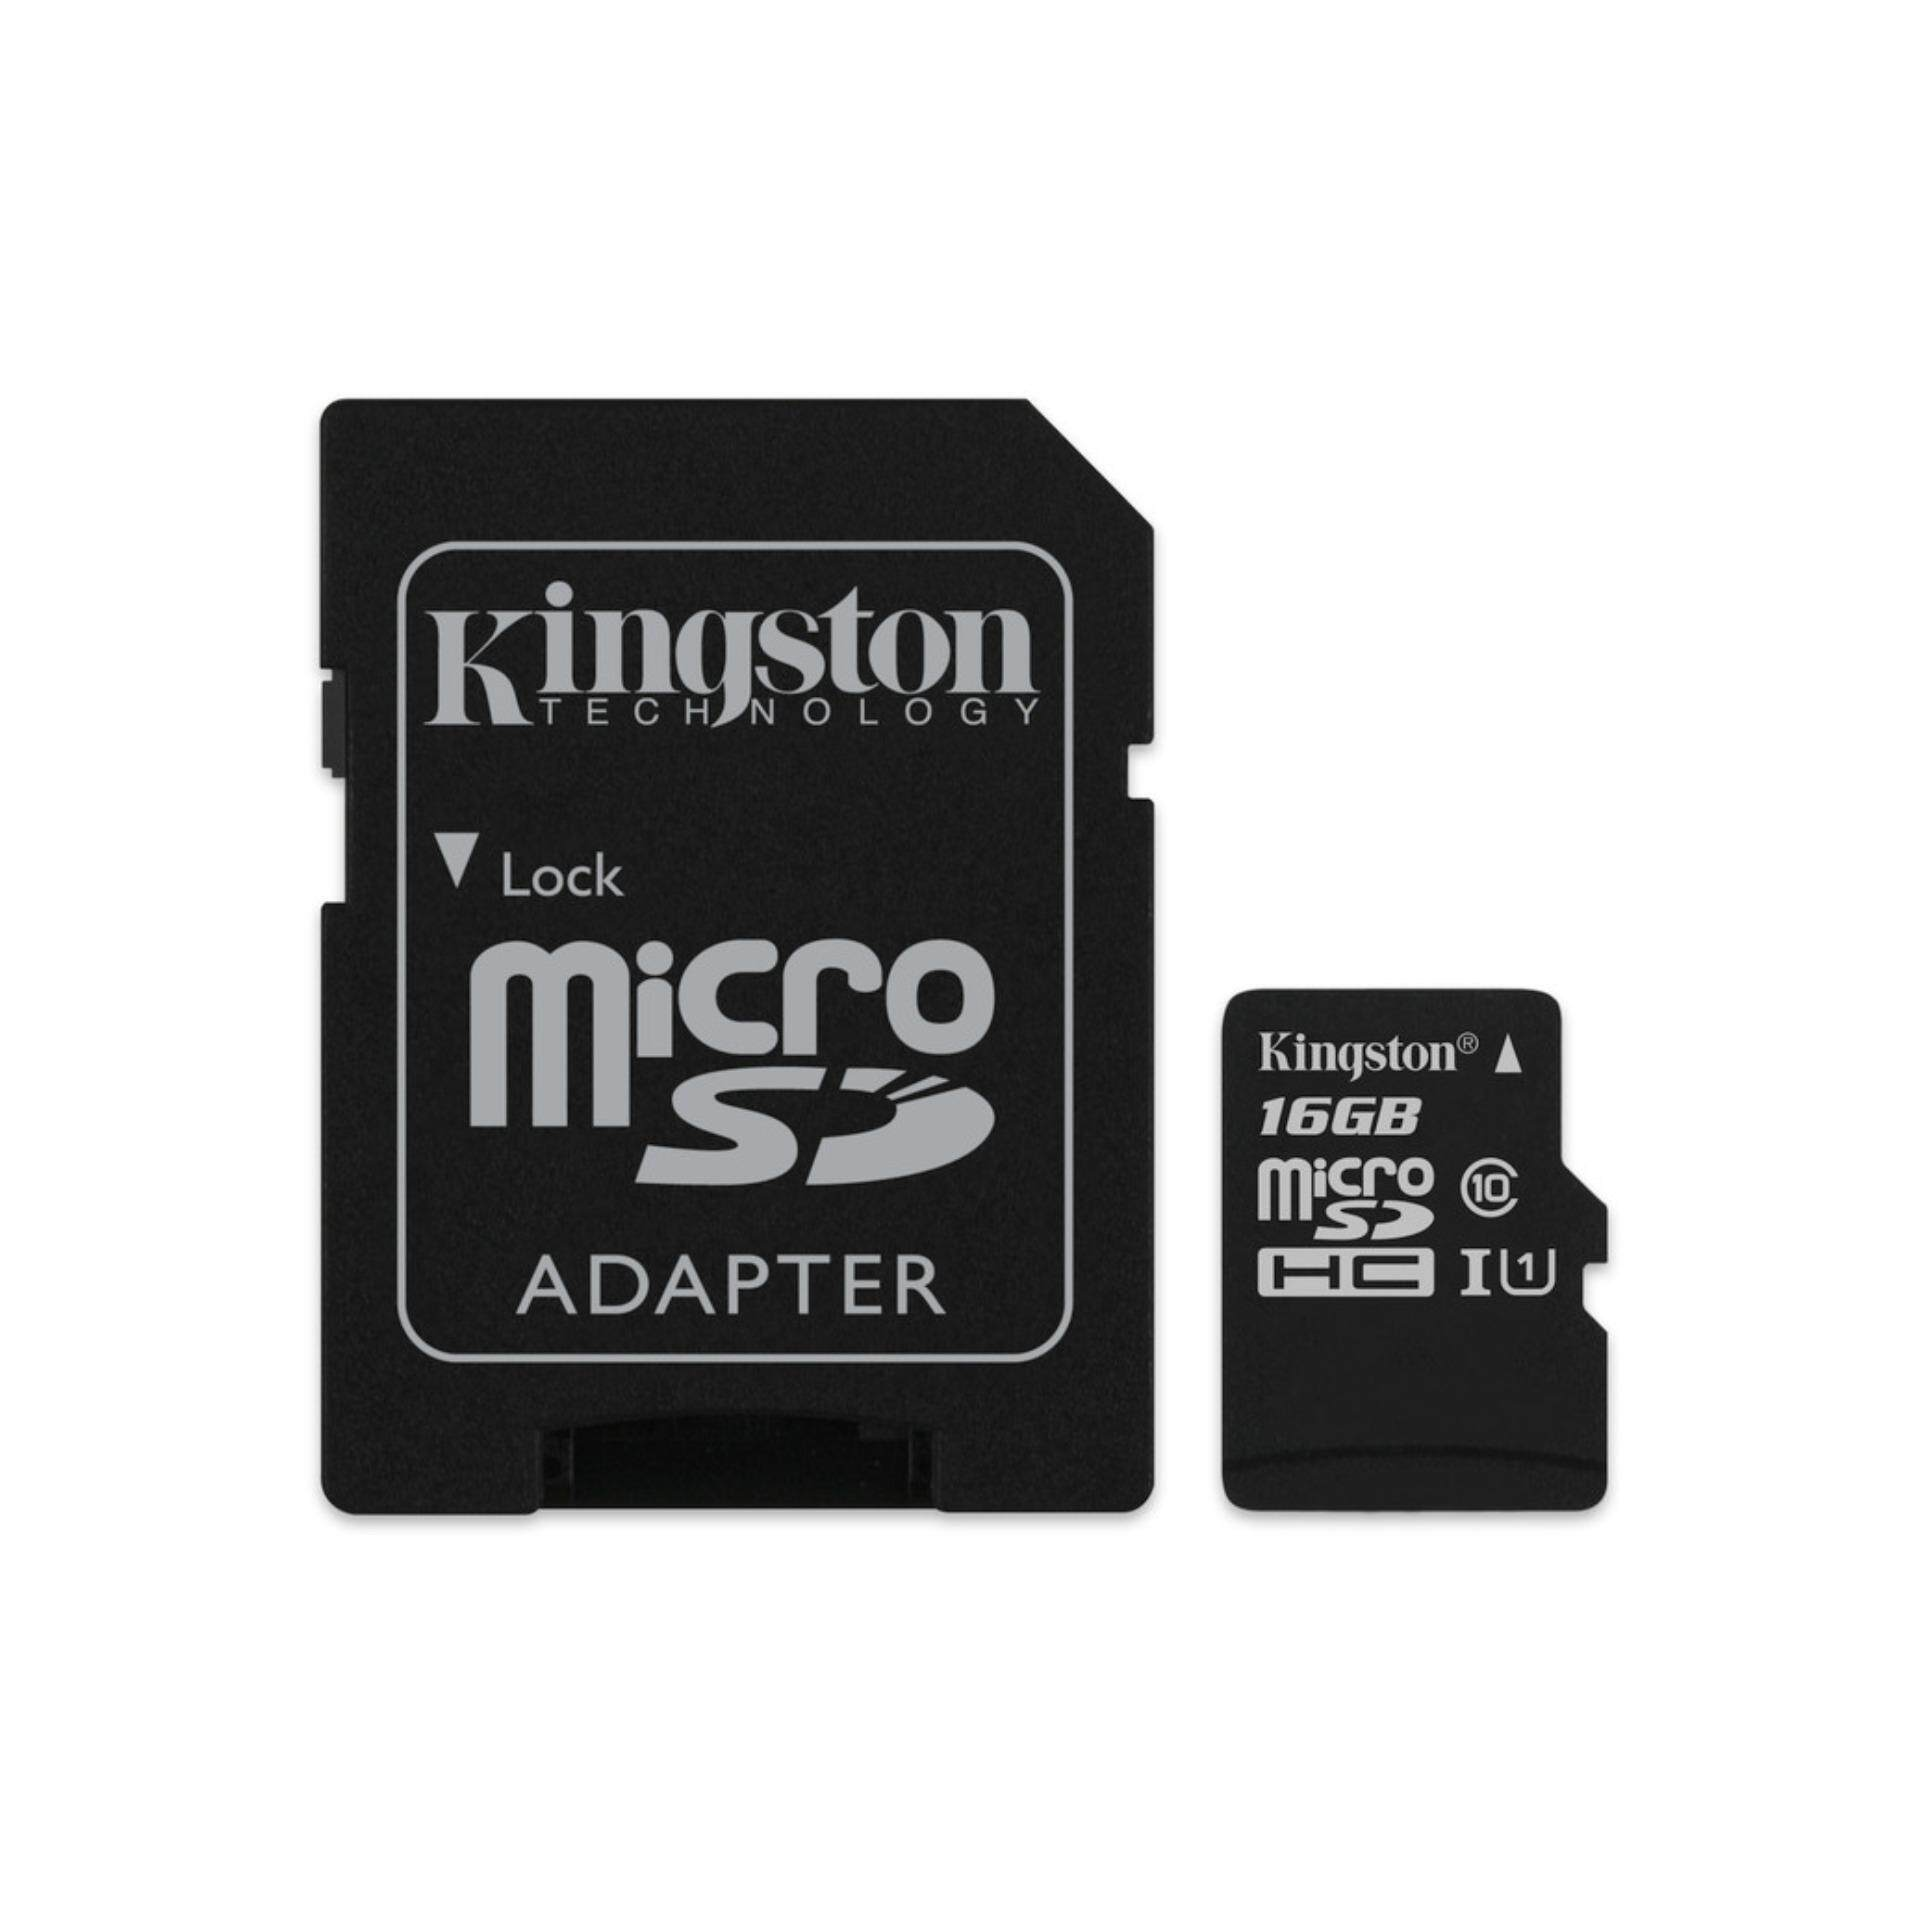 Kingston Microsdhc Canvas Select 80r Cl10 Uhs-I Card + Sd Adapter(compatible, Non-Proprietary) By Lazada Retail Electronics.